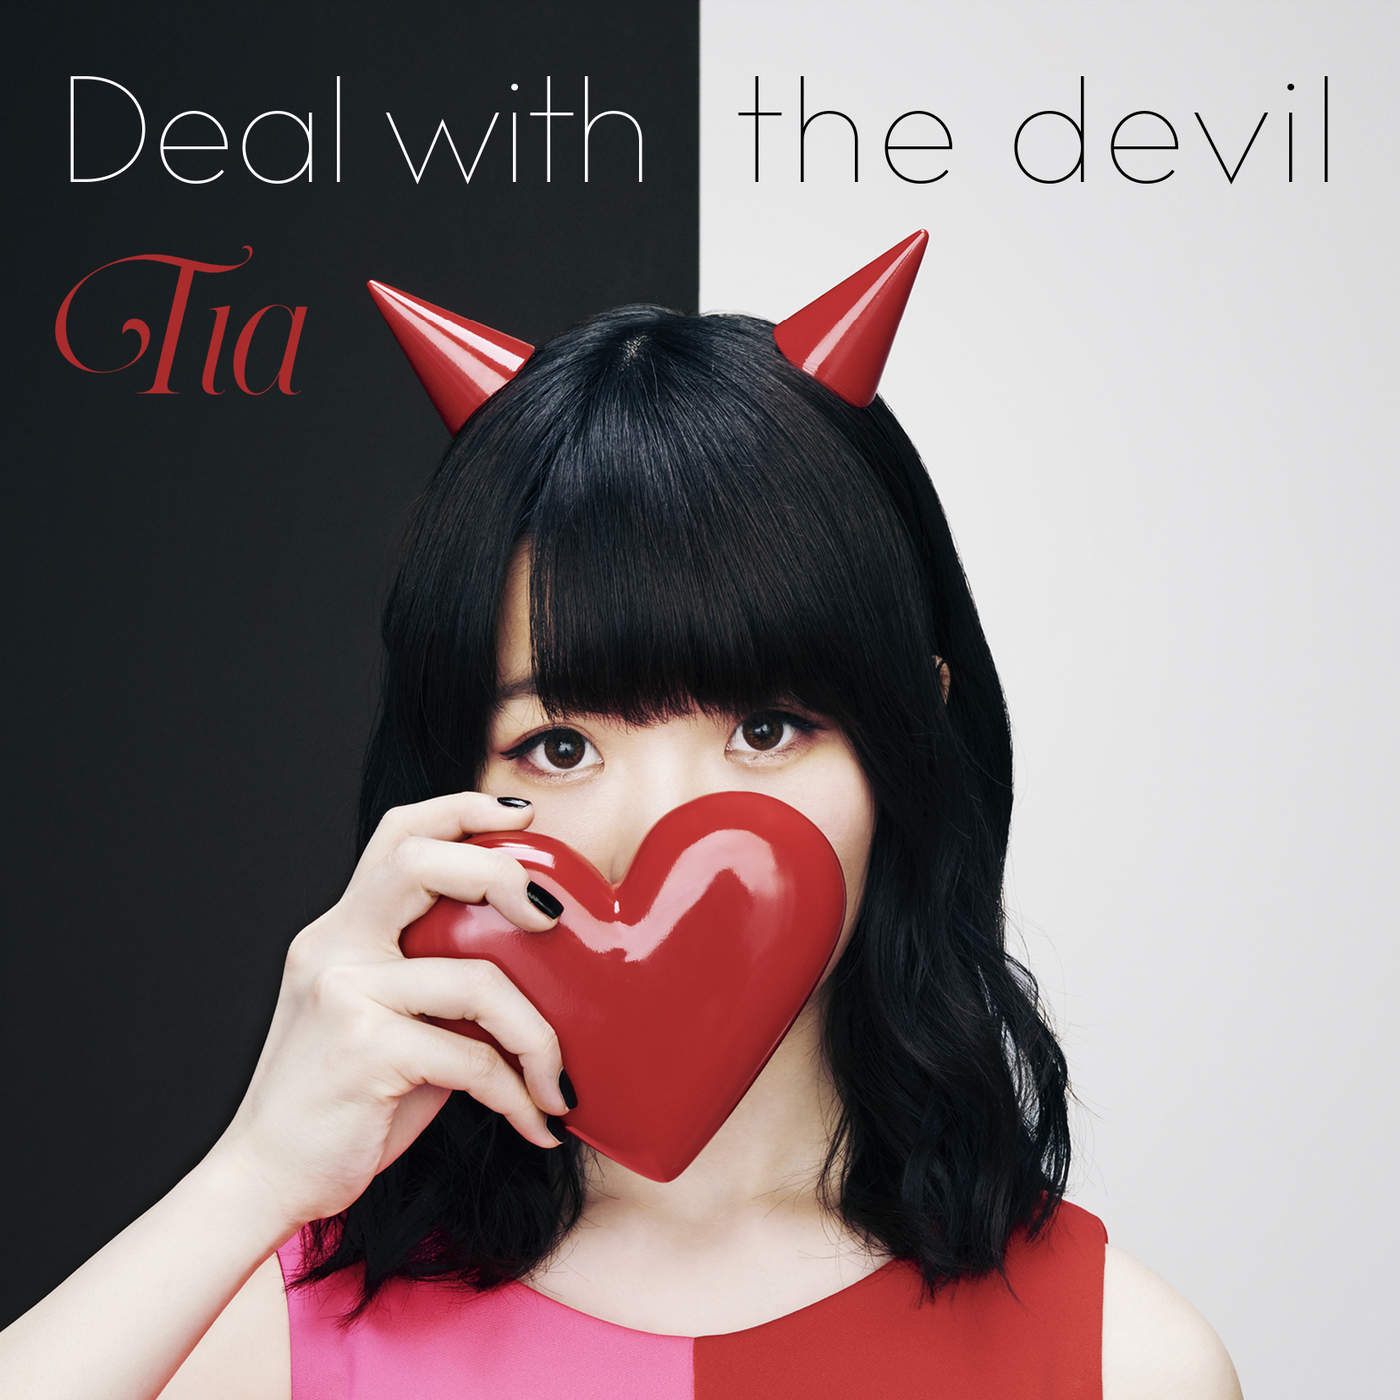 [TOP1] Tia – Deal with the devil